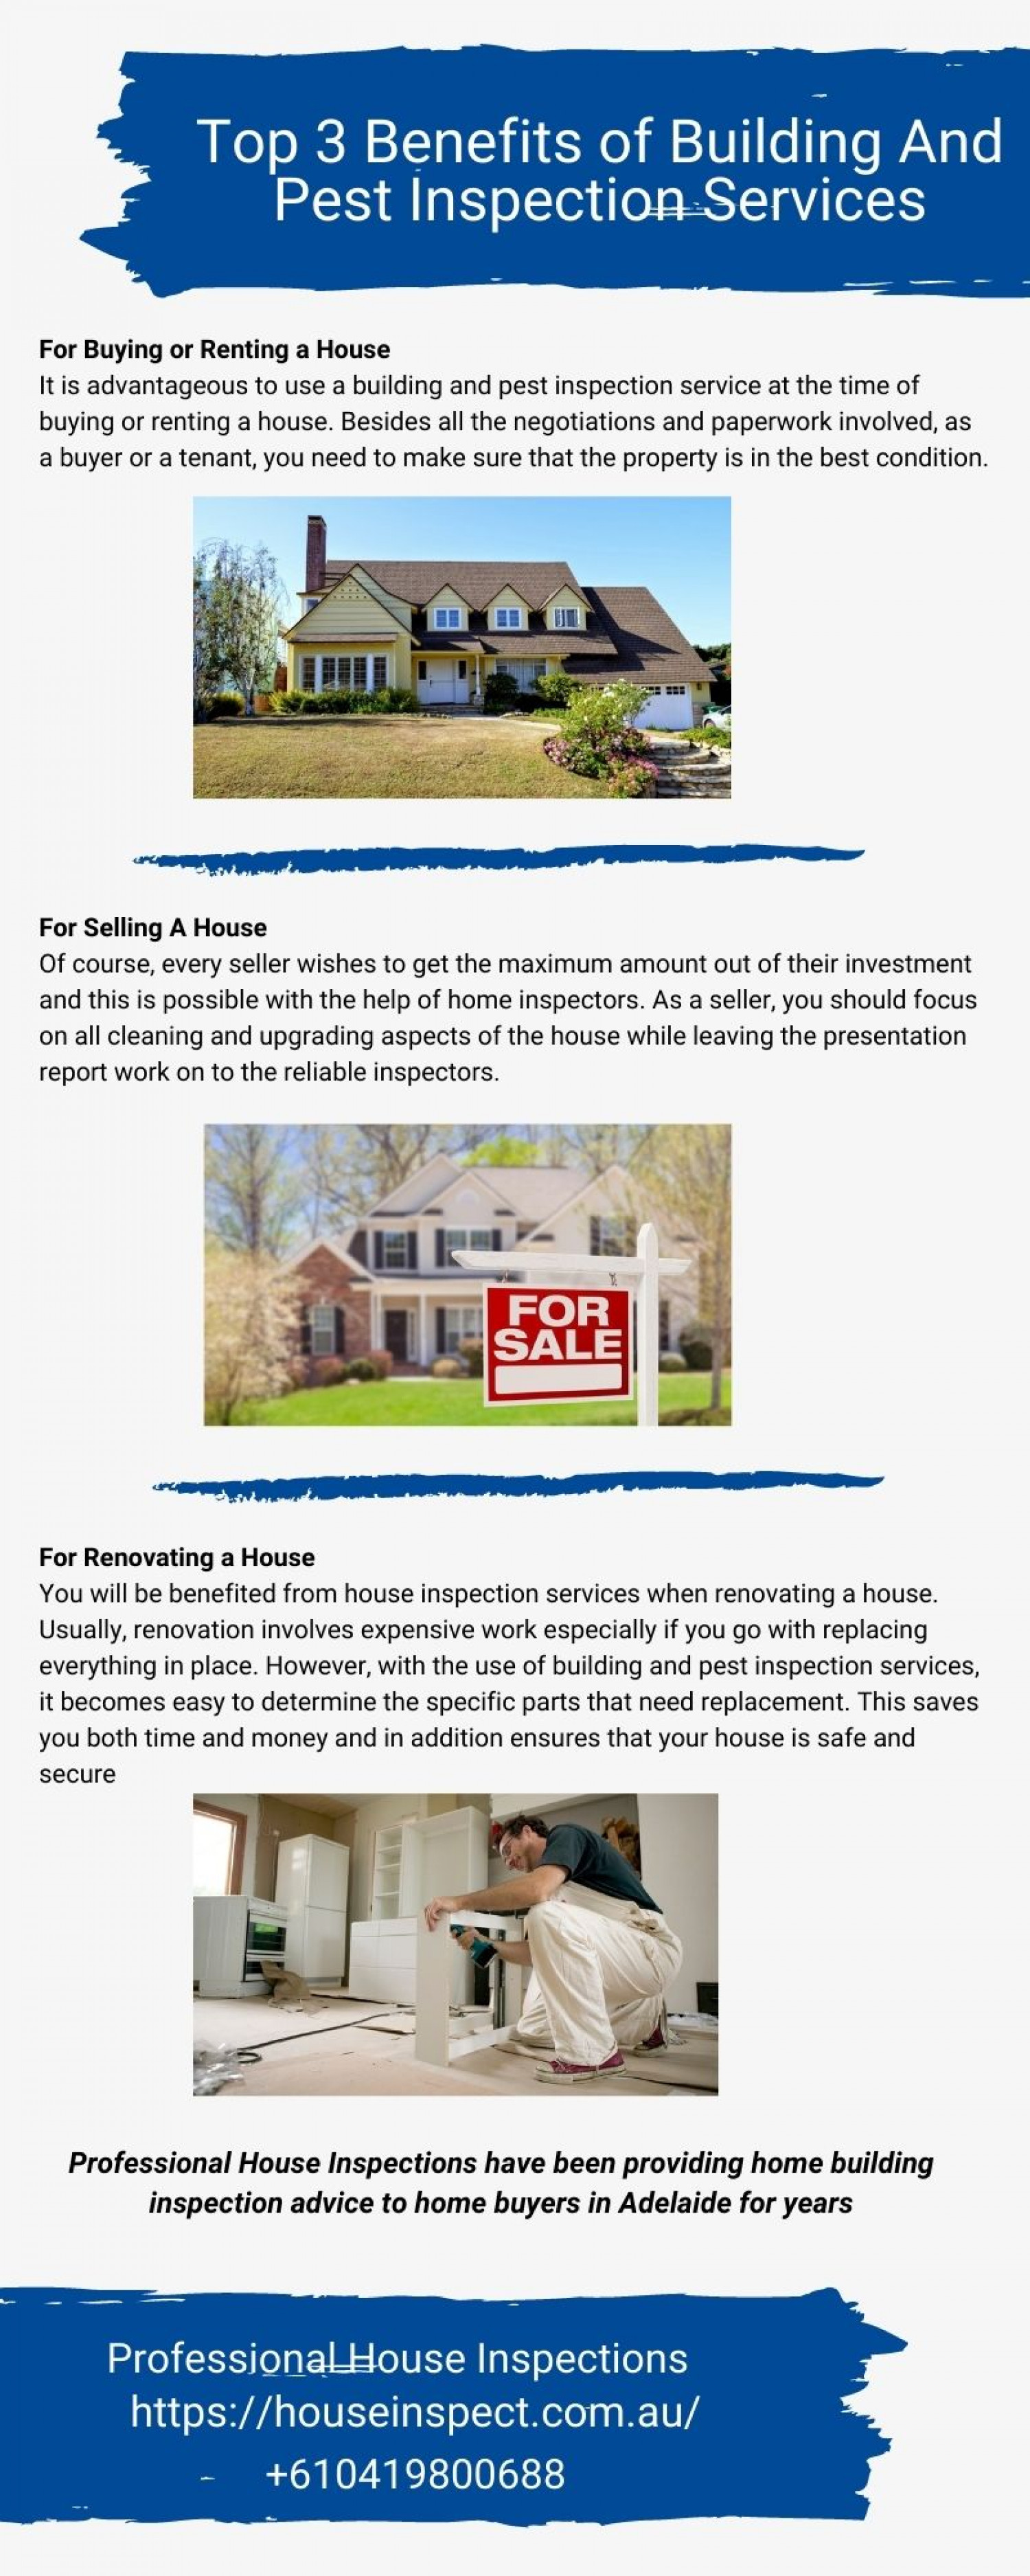 Top 3 Benefits of Building & Pest Inspection Services Infographic